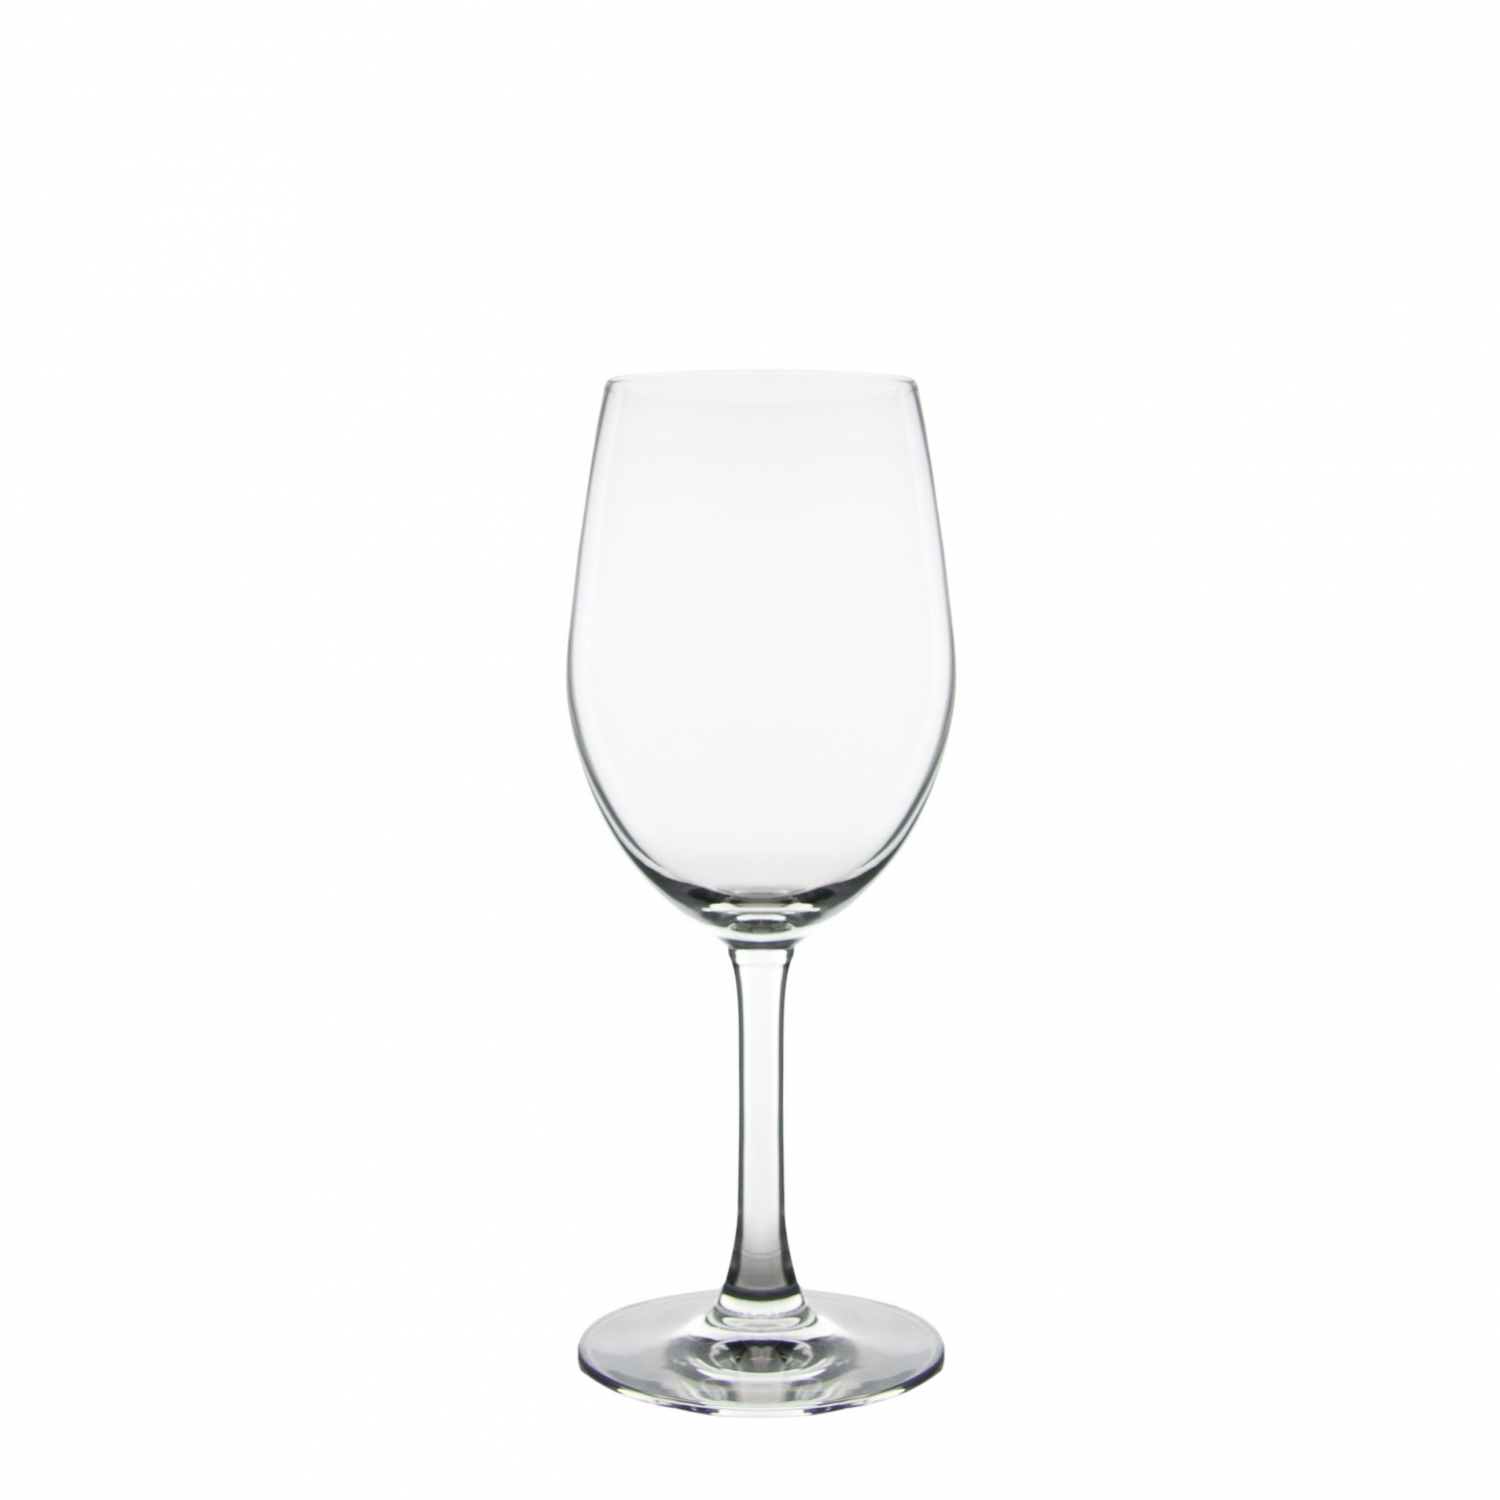 10 Strawberry Street BALI-RW 16-9/10 oz. Bali Red Wine Glass - 24 pcs